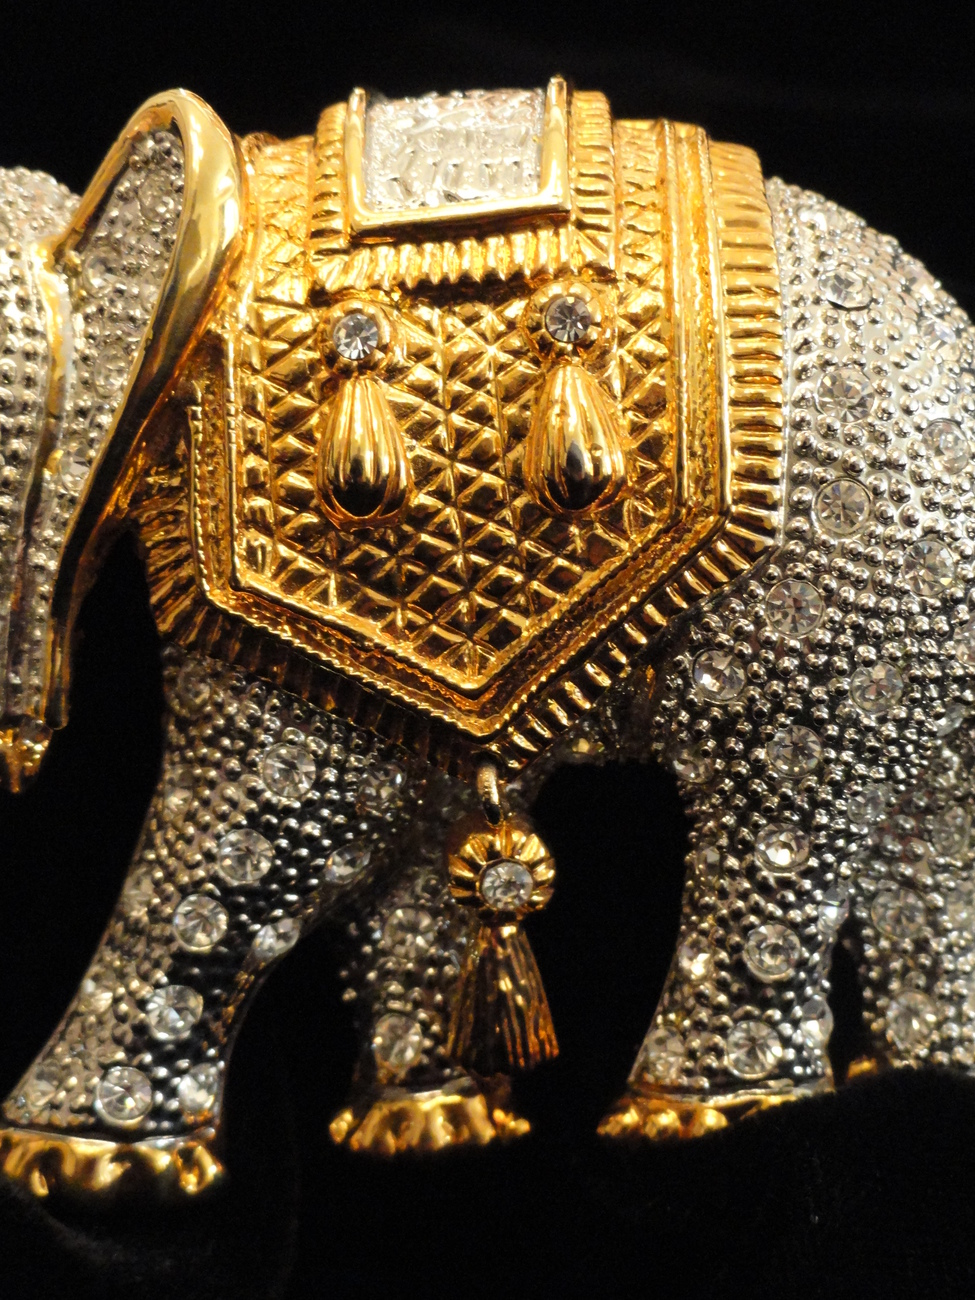 Large Rhinestone Encrusted Goldtone Moghul Howda Elephant Brooch With Movement